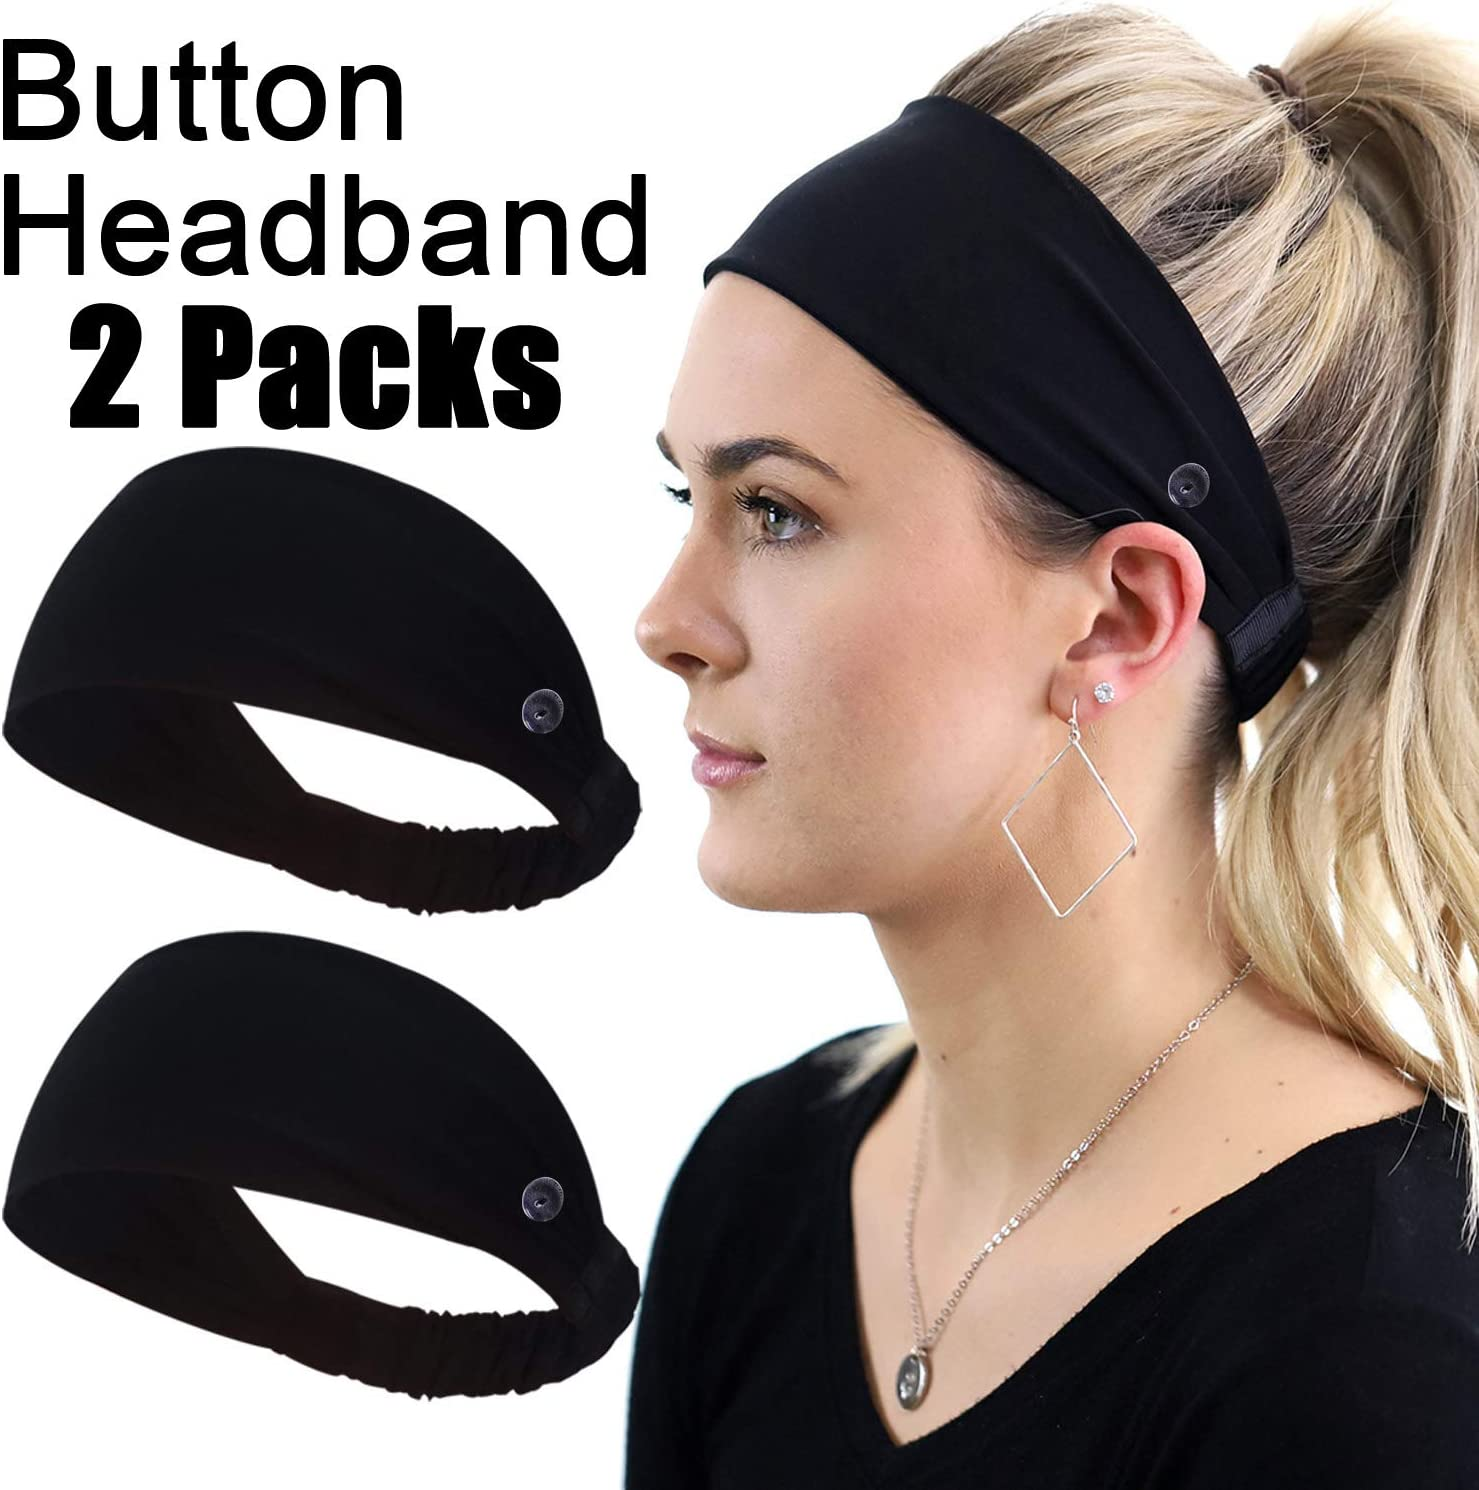 Headwear Never Say Sweatband Elastic Turban Sport Headband Outdoor Head Wrap